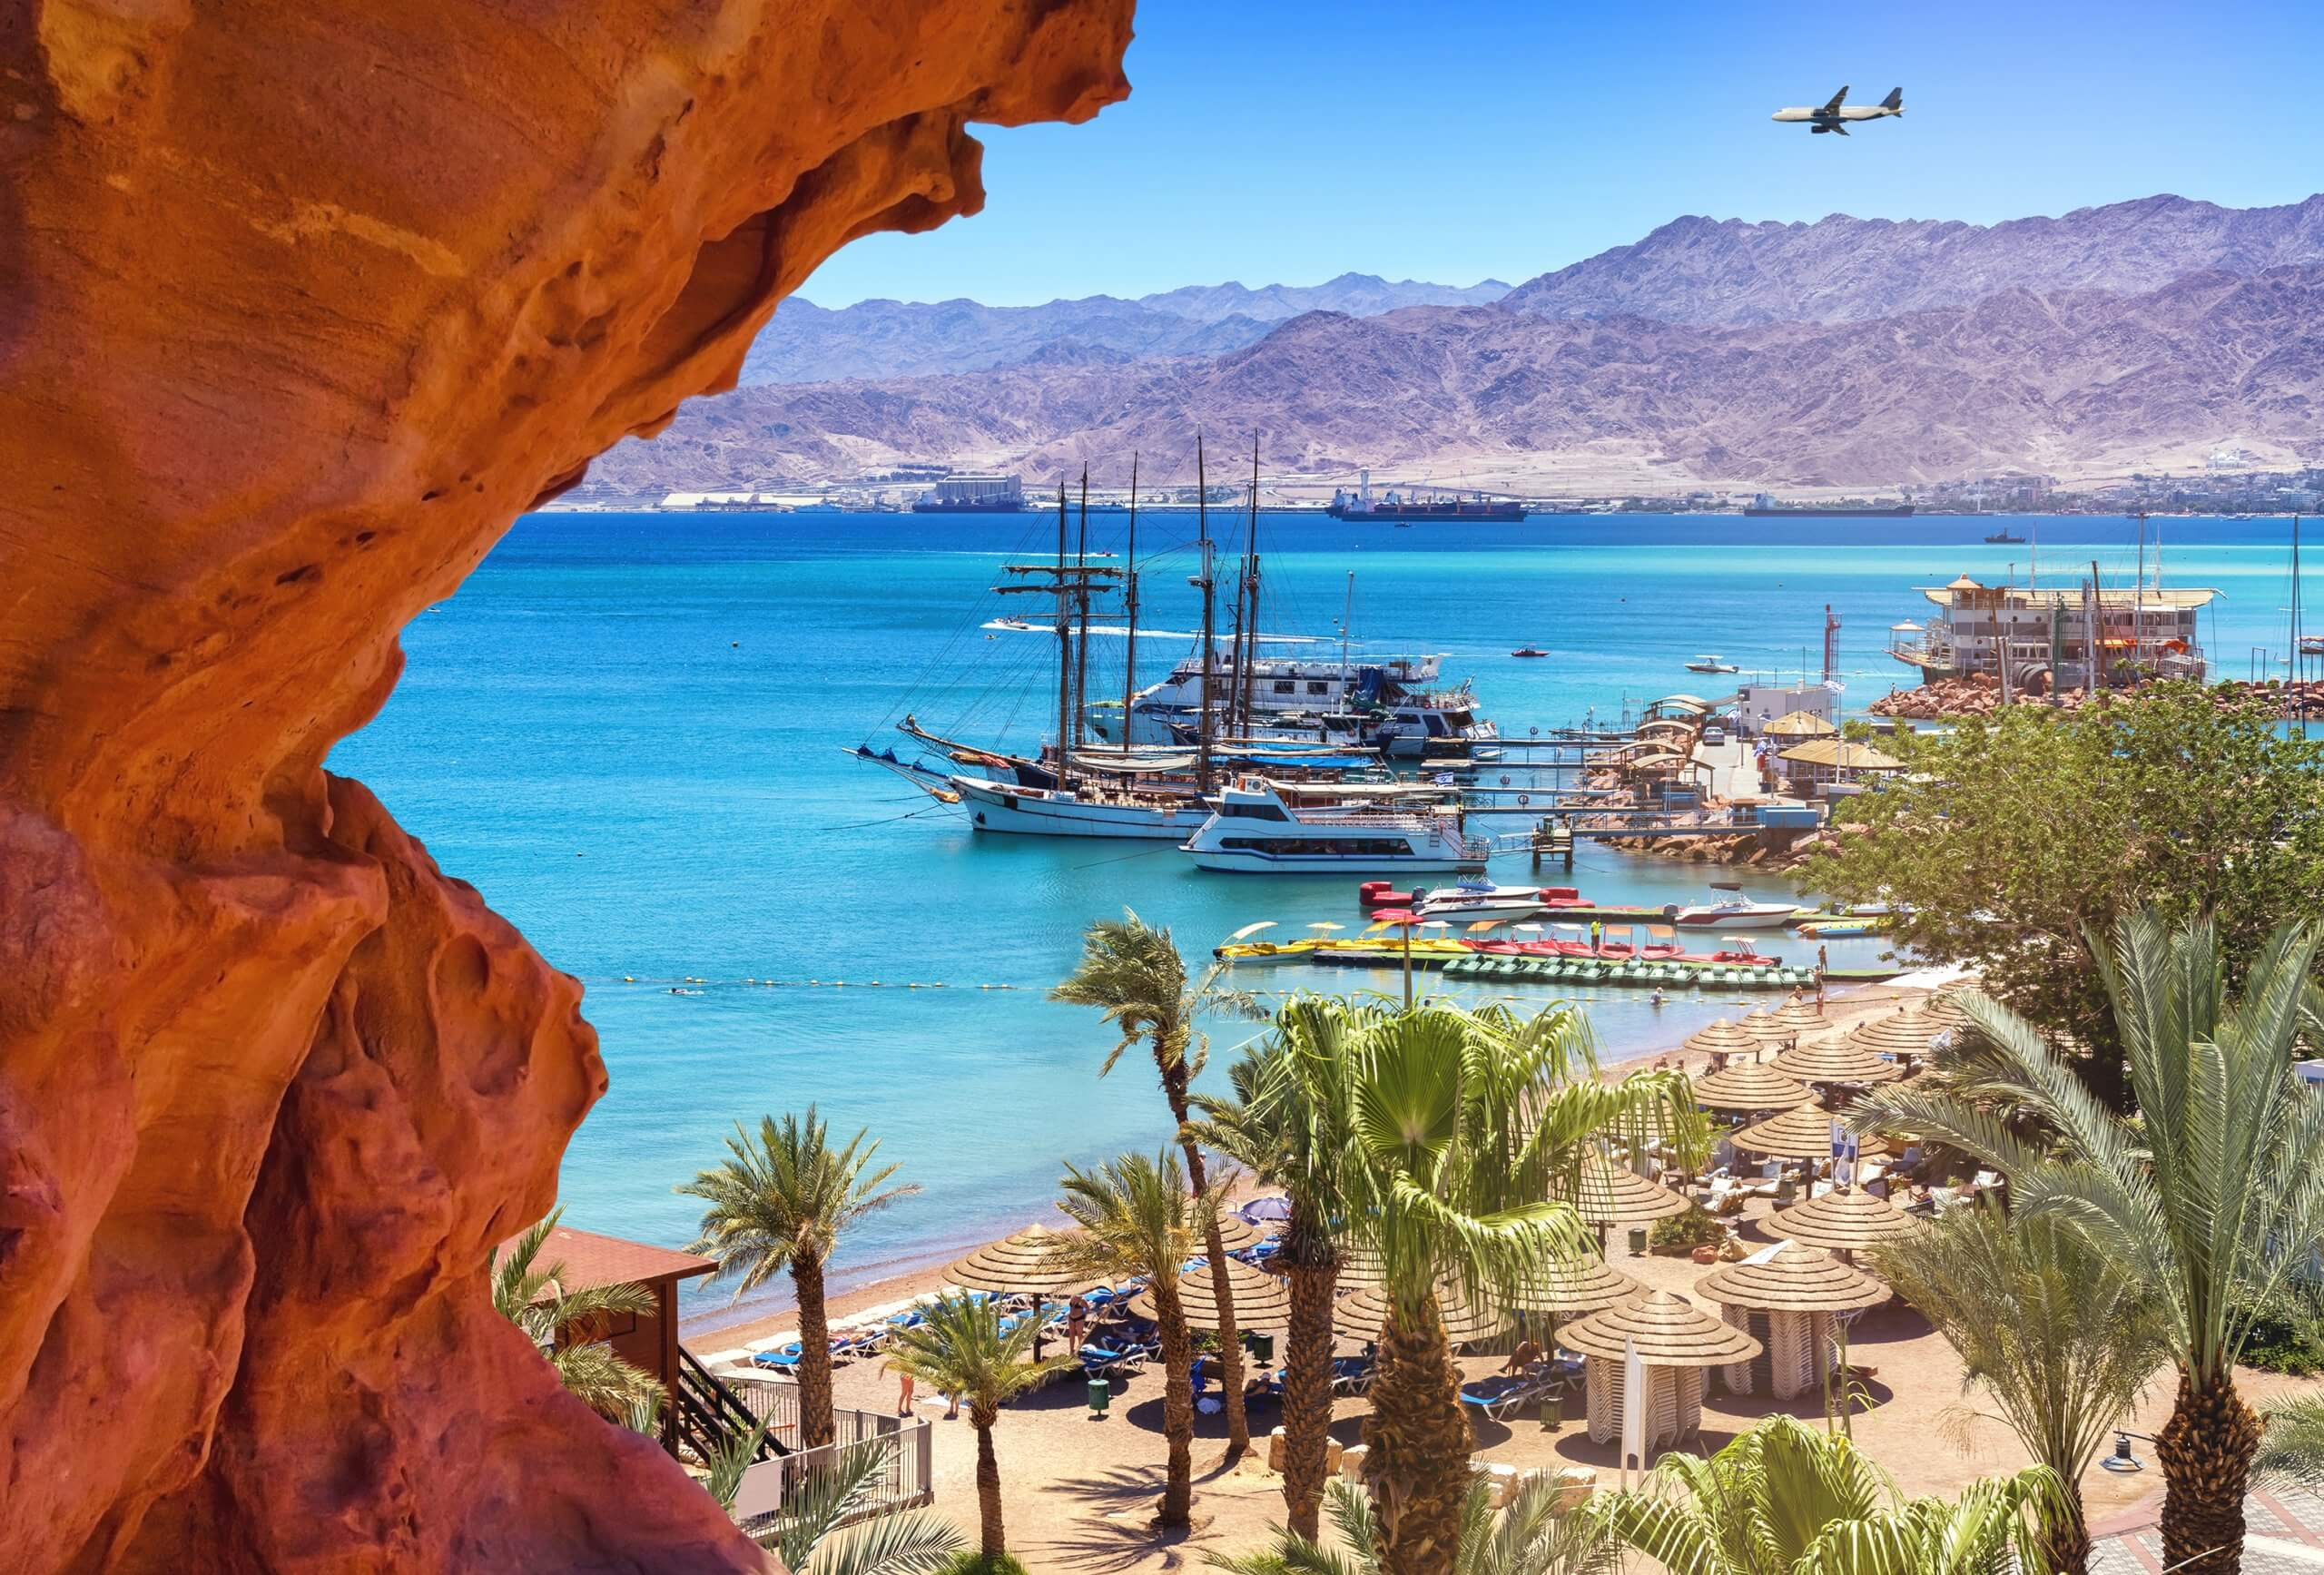 eilat-is-a-very-popular-tropical-getaway-for-israeli-and-european-tourists-stockpack-istock